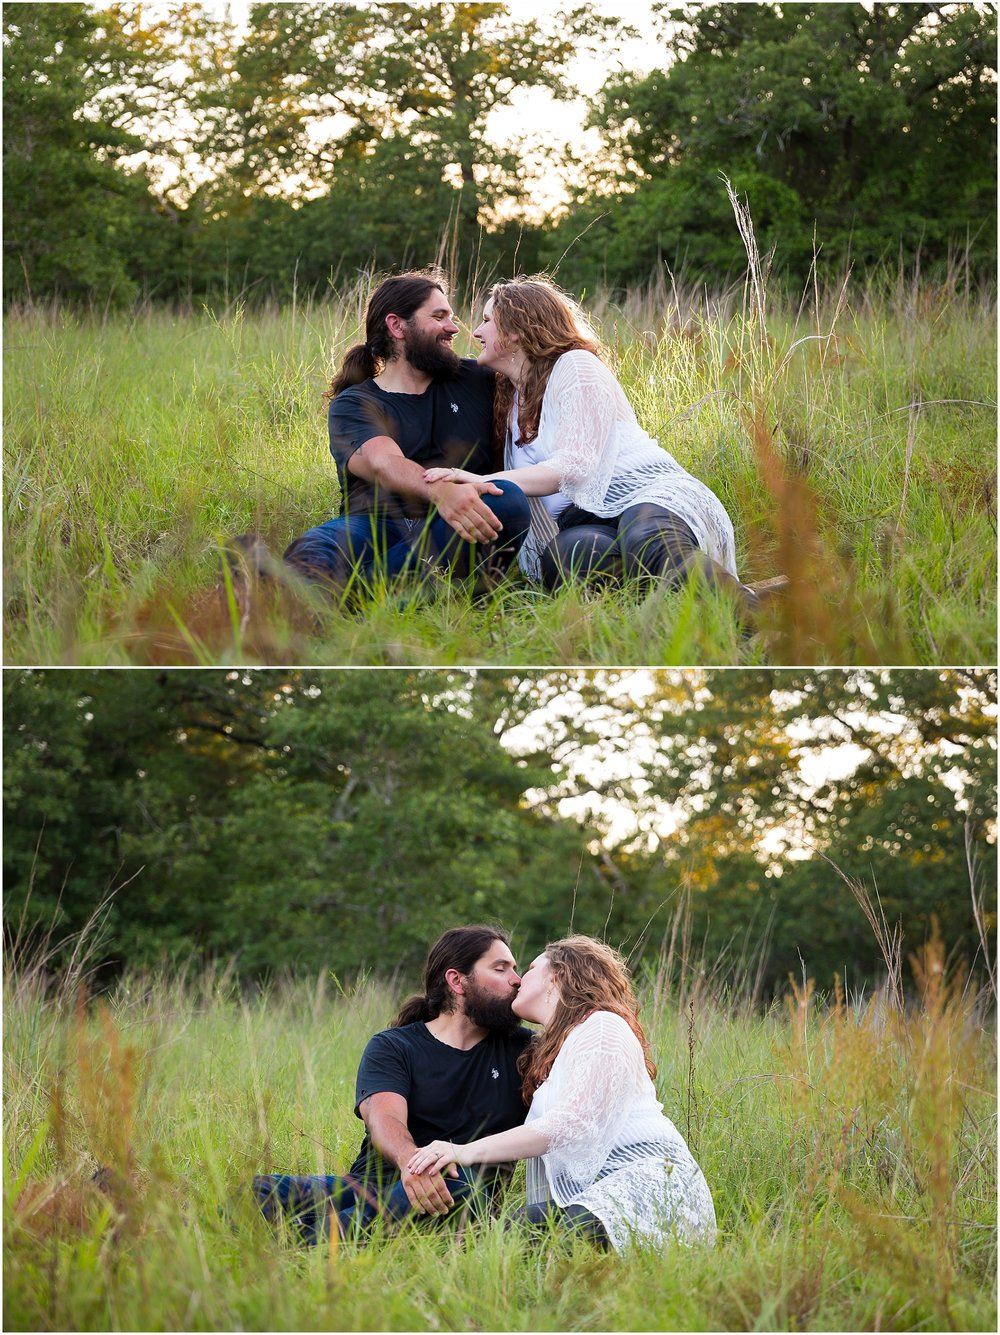 A couple sits in the tall grass in field at sunset during their engagement photos - Jason & Melaina Photography - www.jasonandmelaina.com